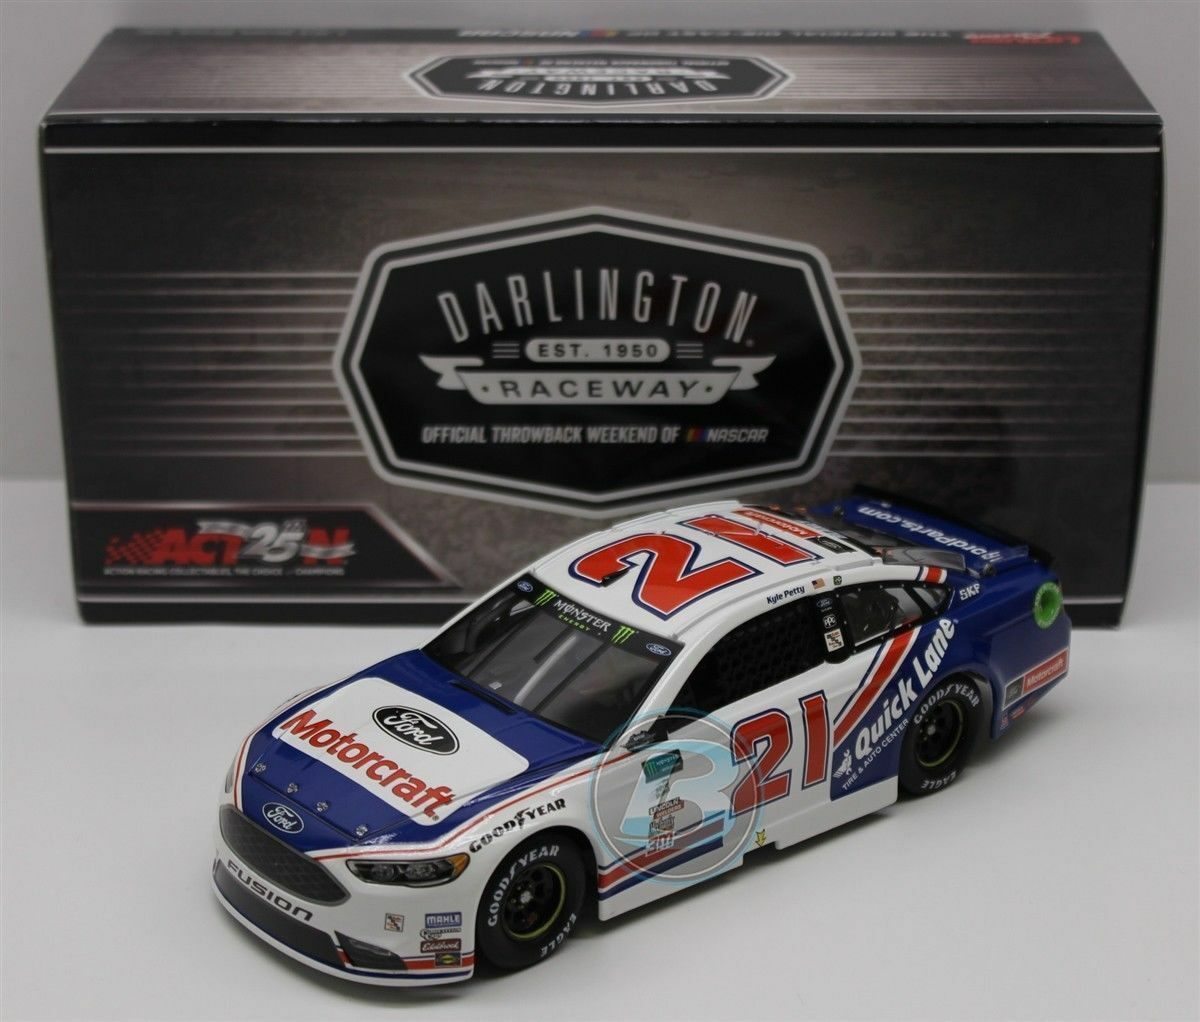 Ryan Blaney Motorcraft Darlington 2017 HOTO 1 24 Scale NASCAR Cup Diecast